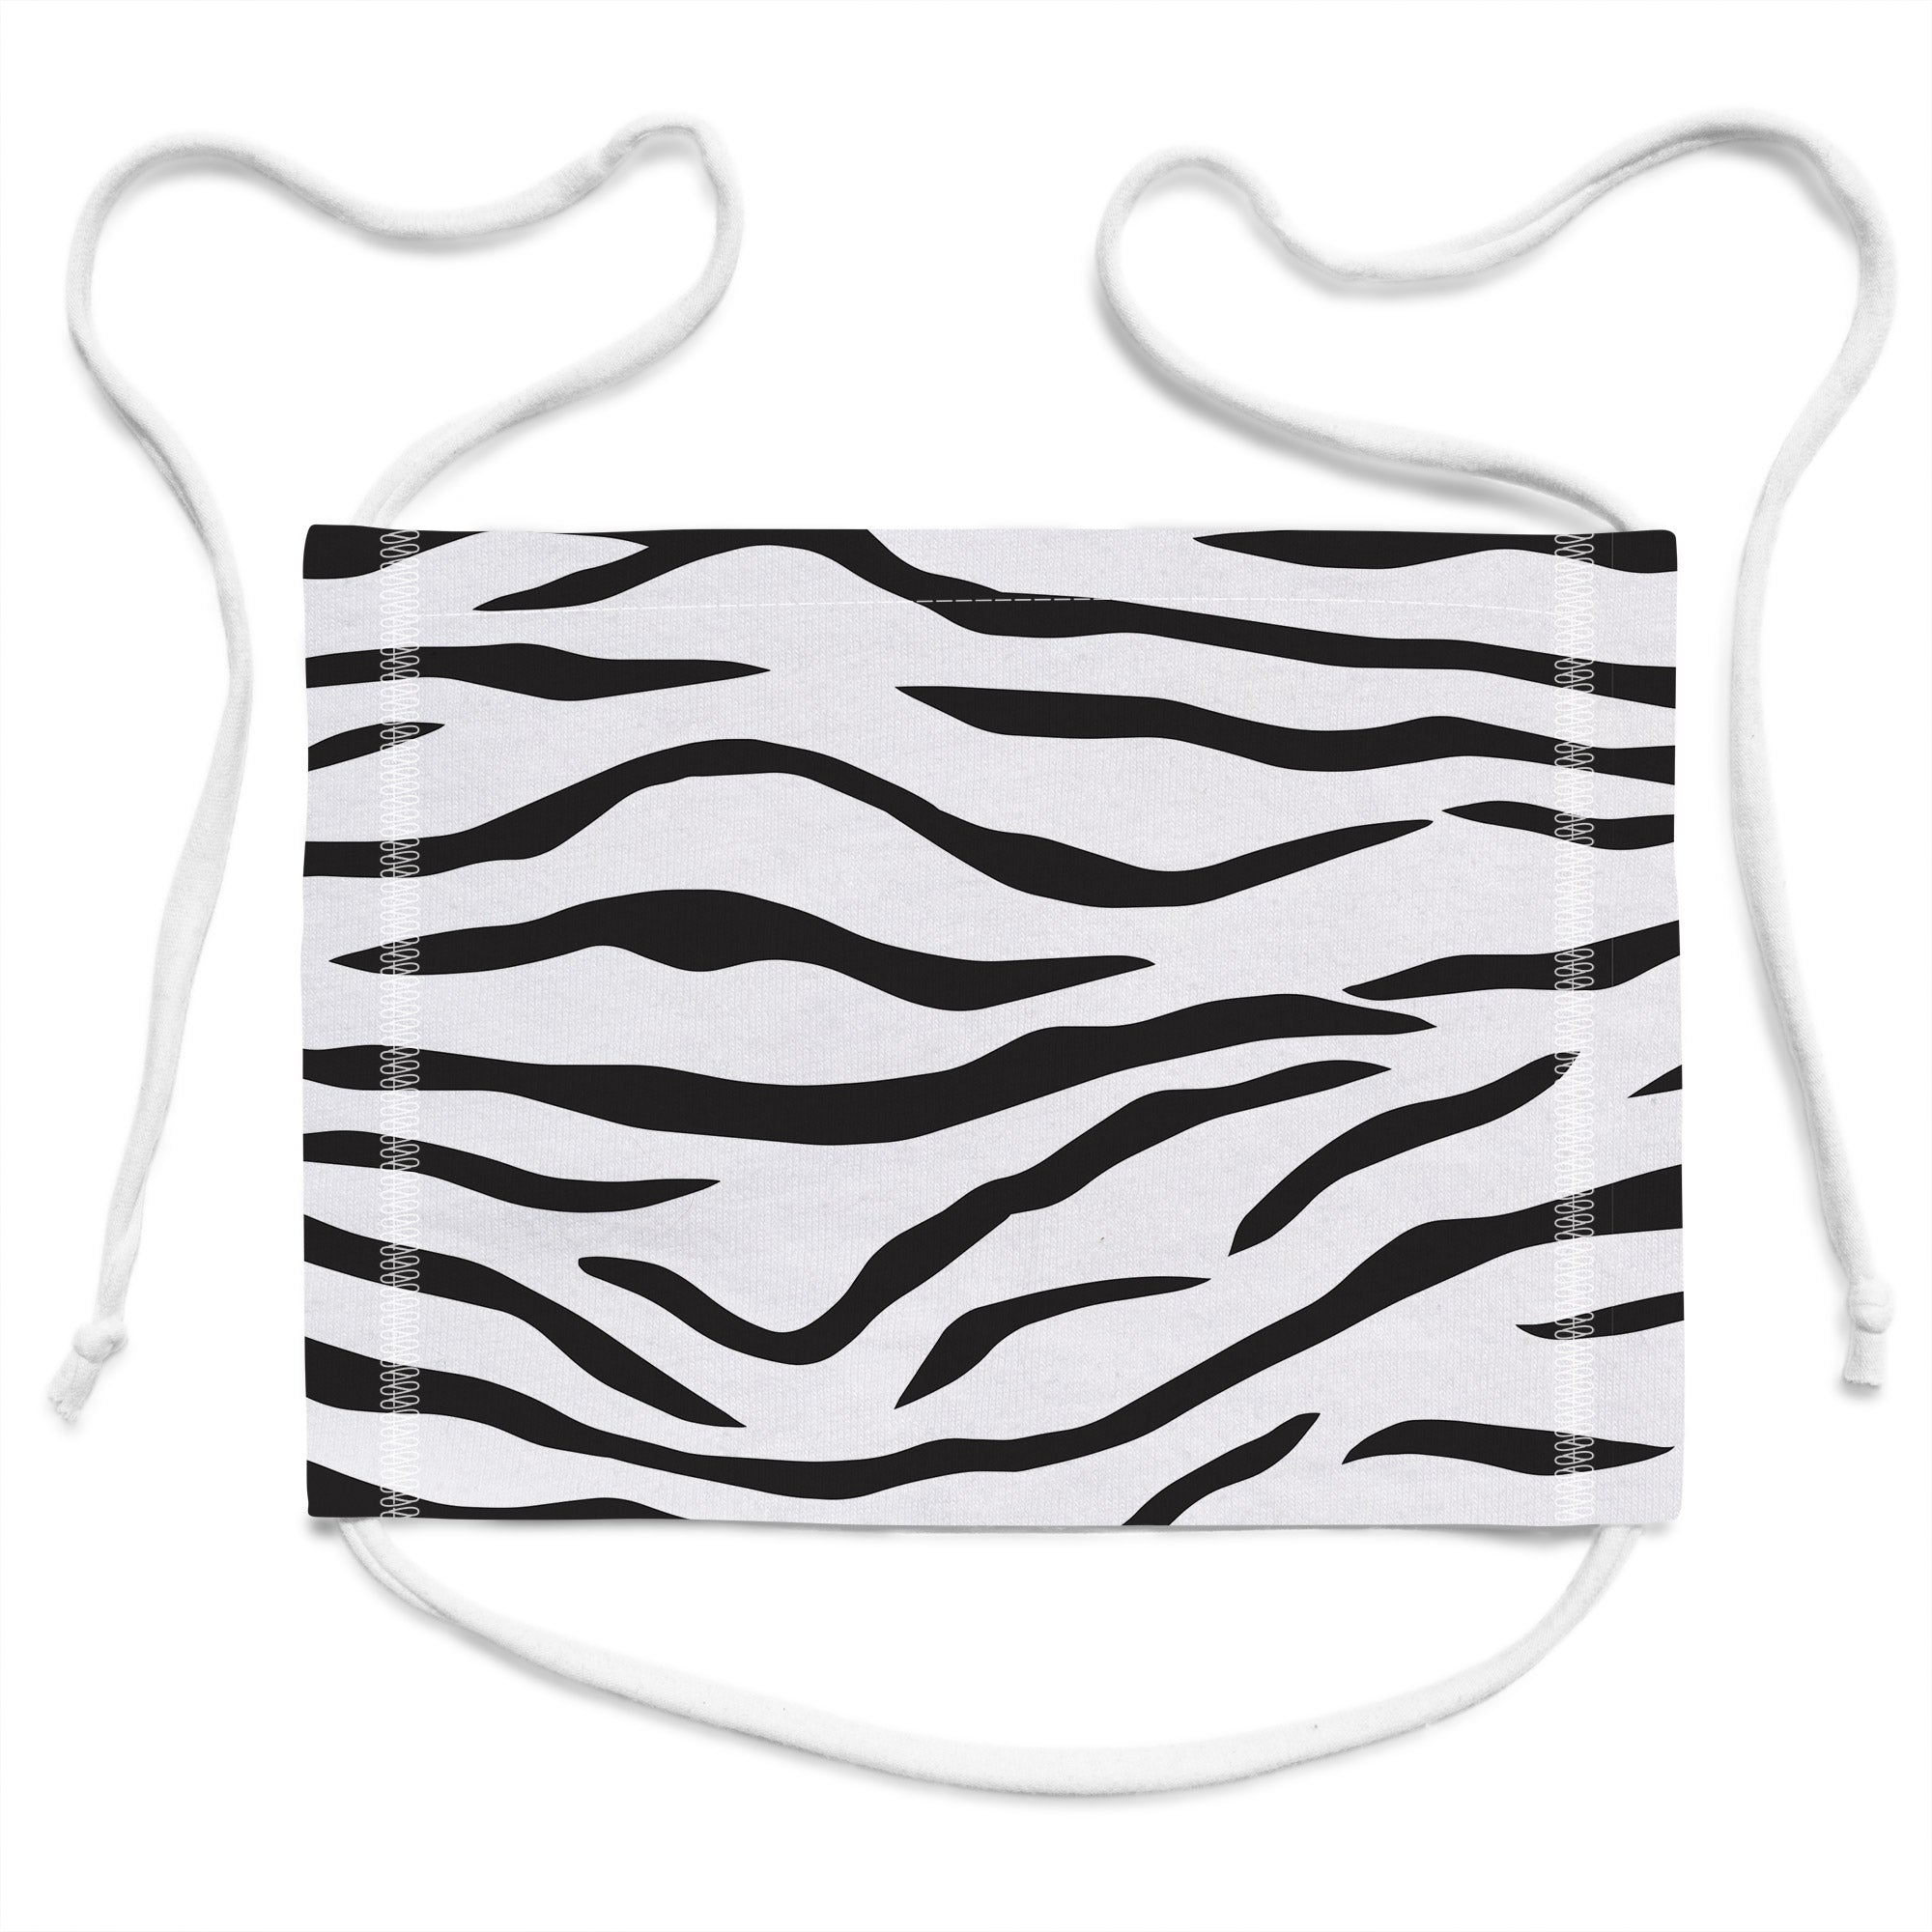 CHEAP Zebra Face Mask 26660545859 – Clothing Accessories